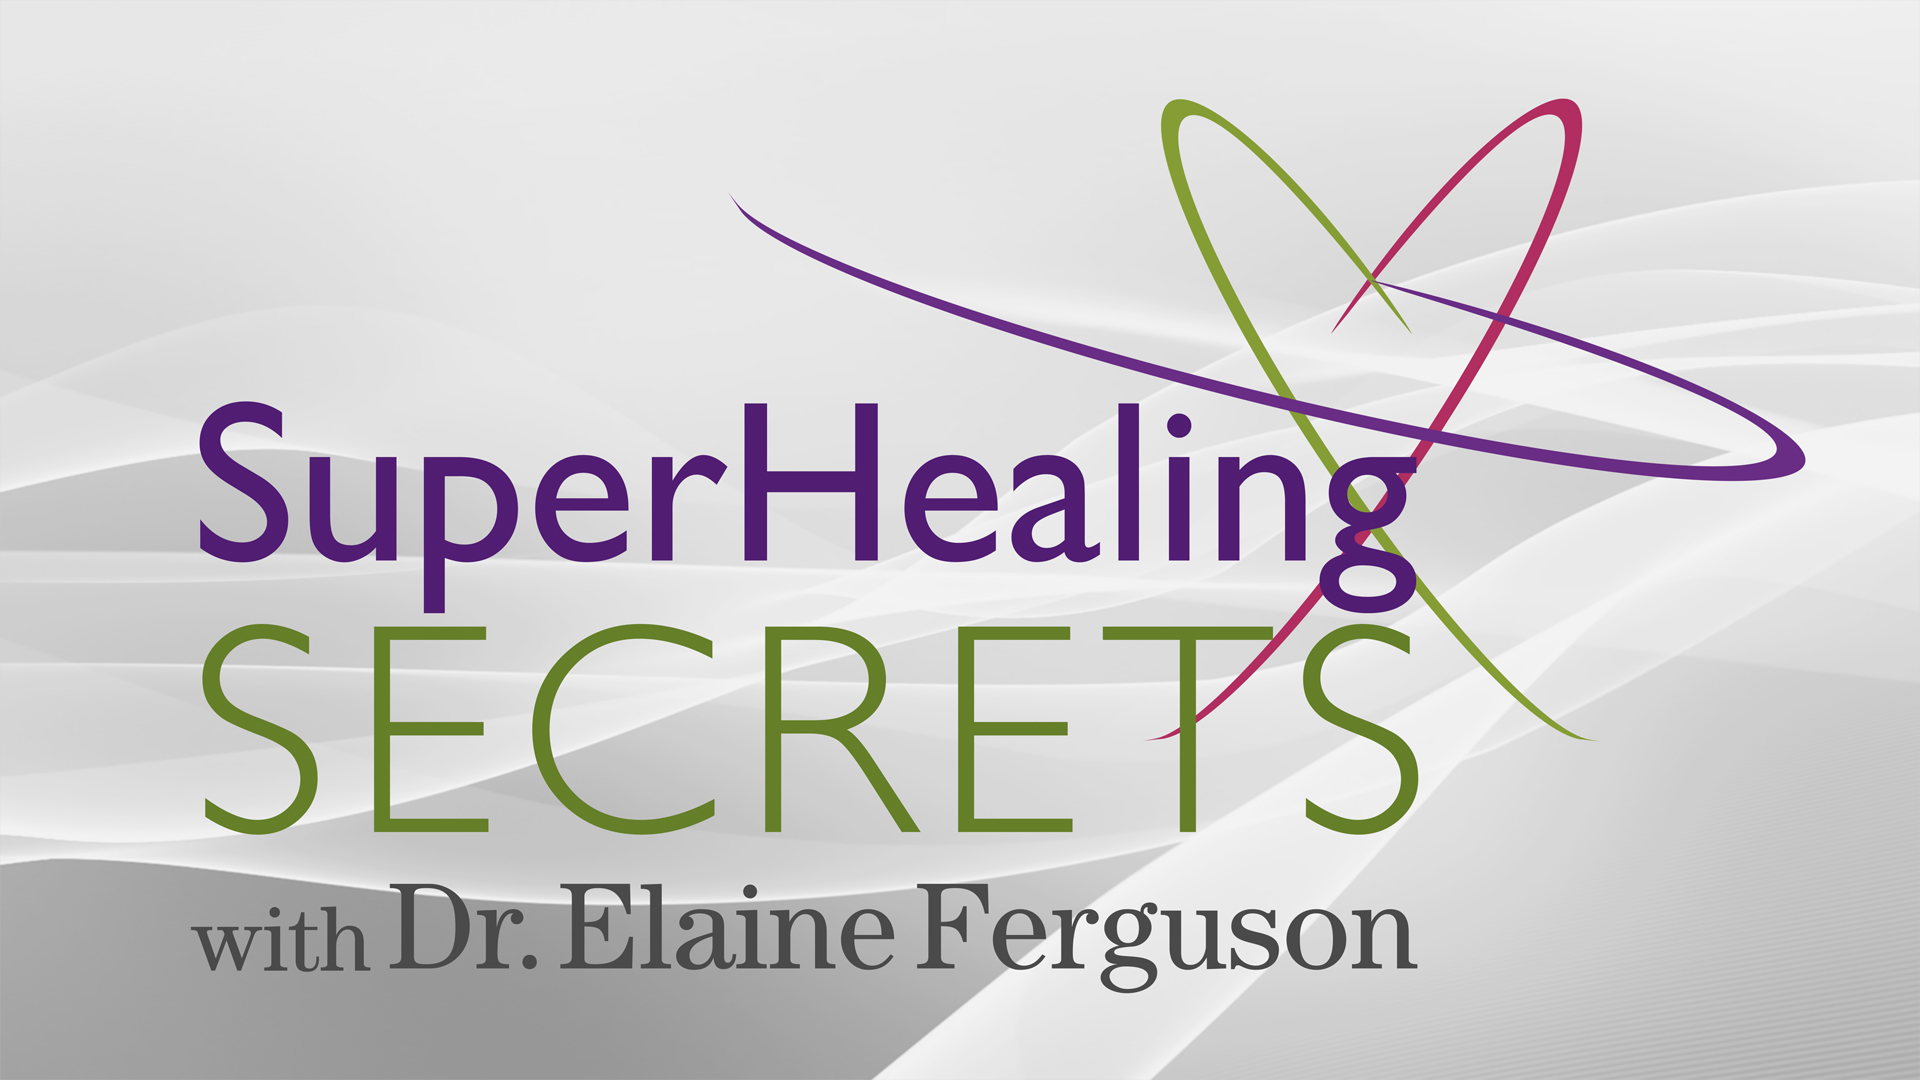 What is Superhealing?